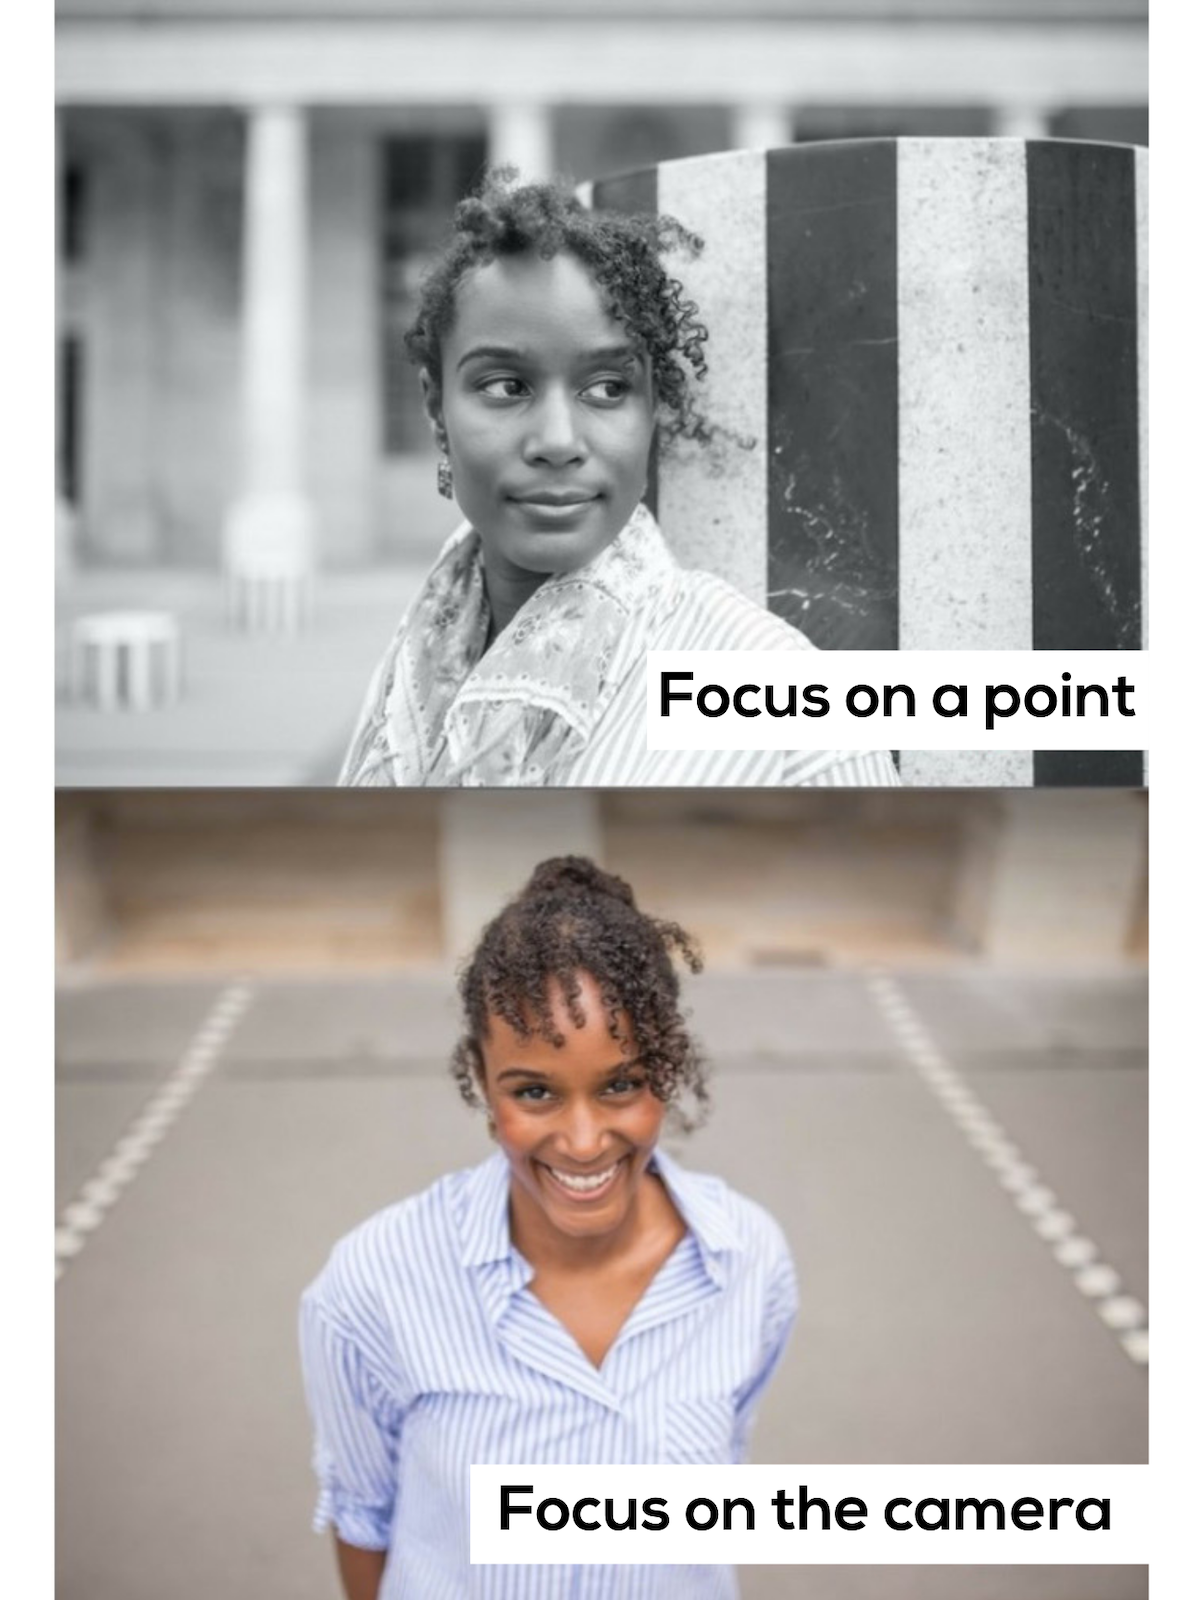 Focus on a point (1).png